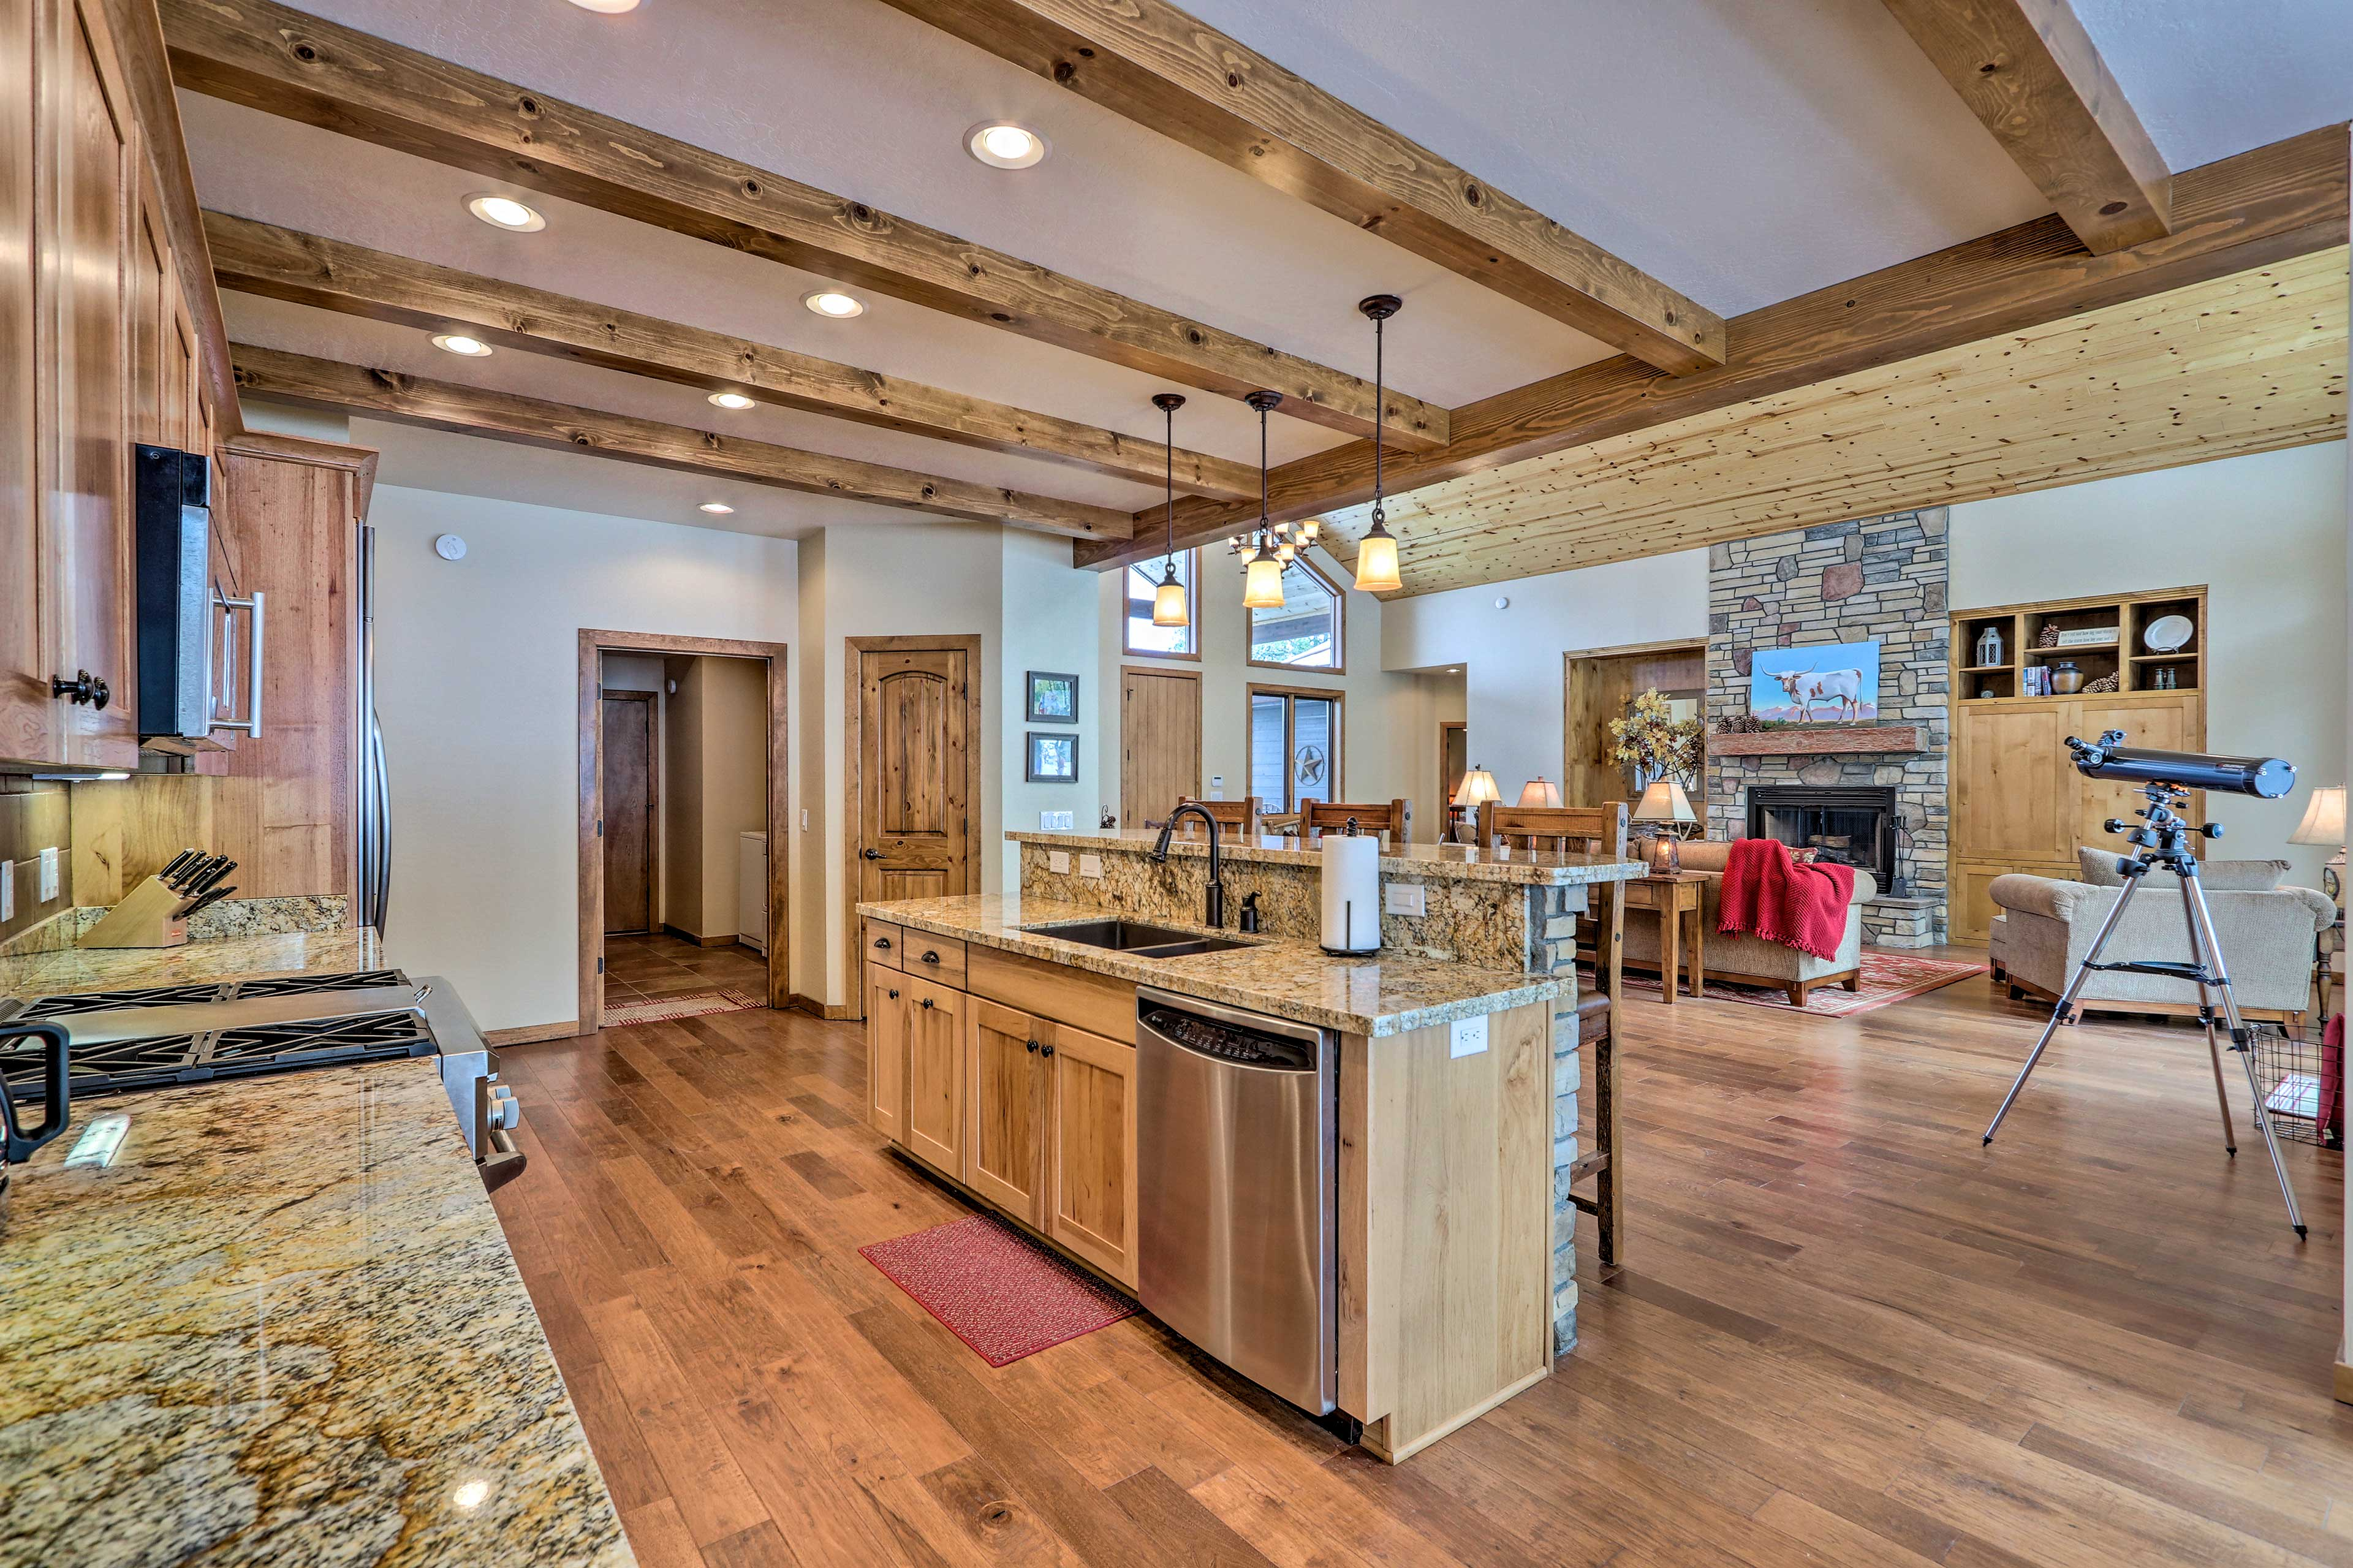 The kitchen opens up to the grand living room.